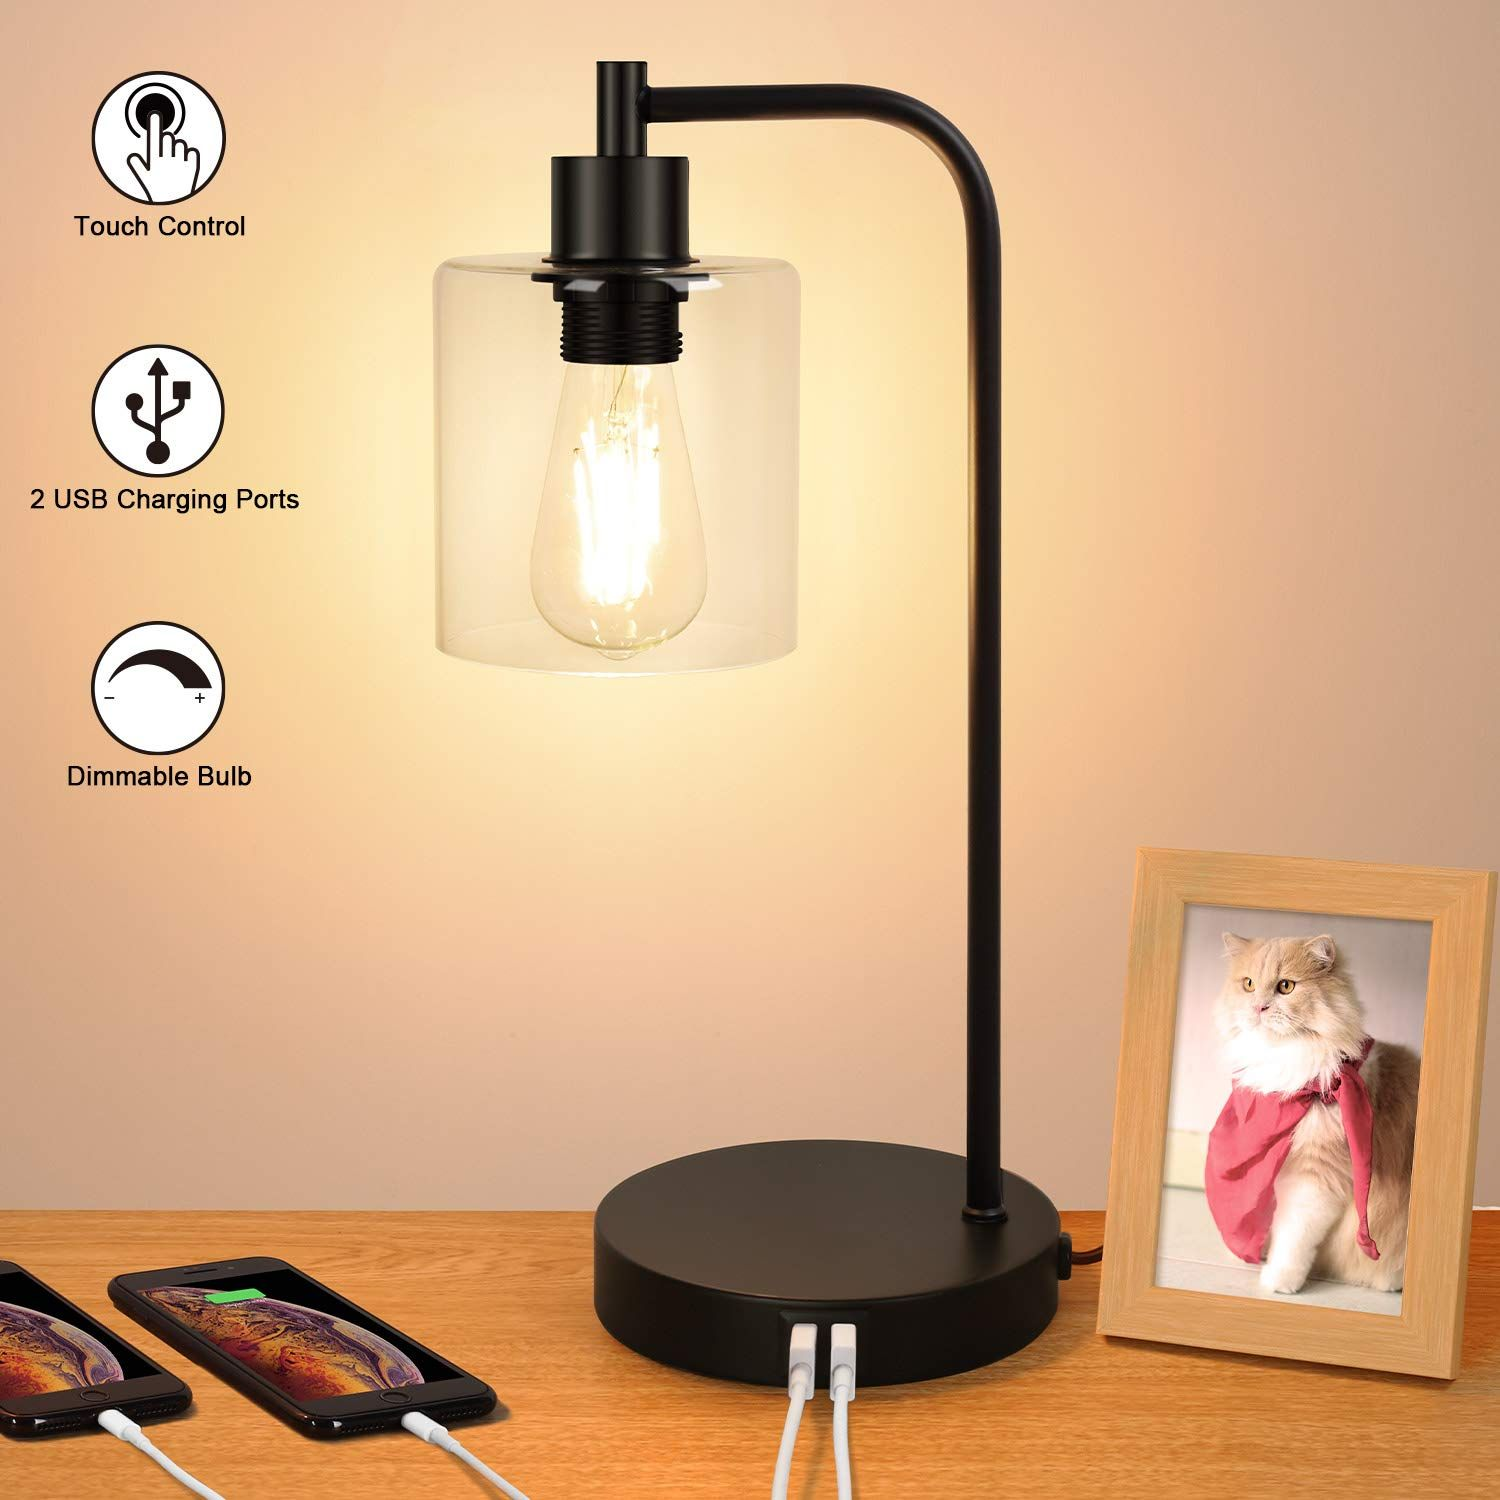 Industrial Touch Control Table Lamp To View Further For This Item Visit The Image Link It Is An Affiliat In 2020 Industrial Table Lamp Table Lamp Nightstand Lamp